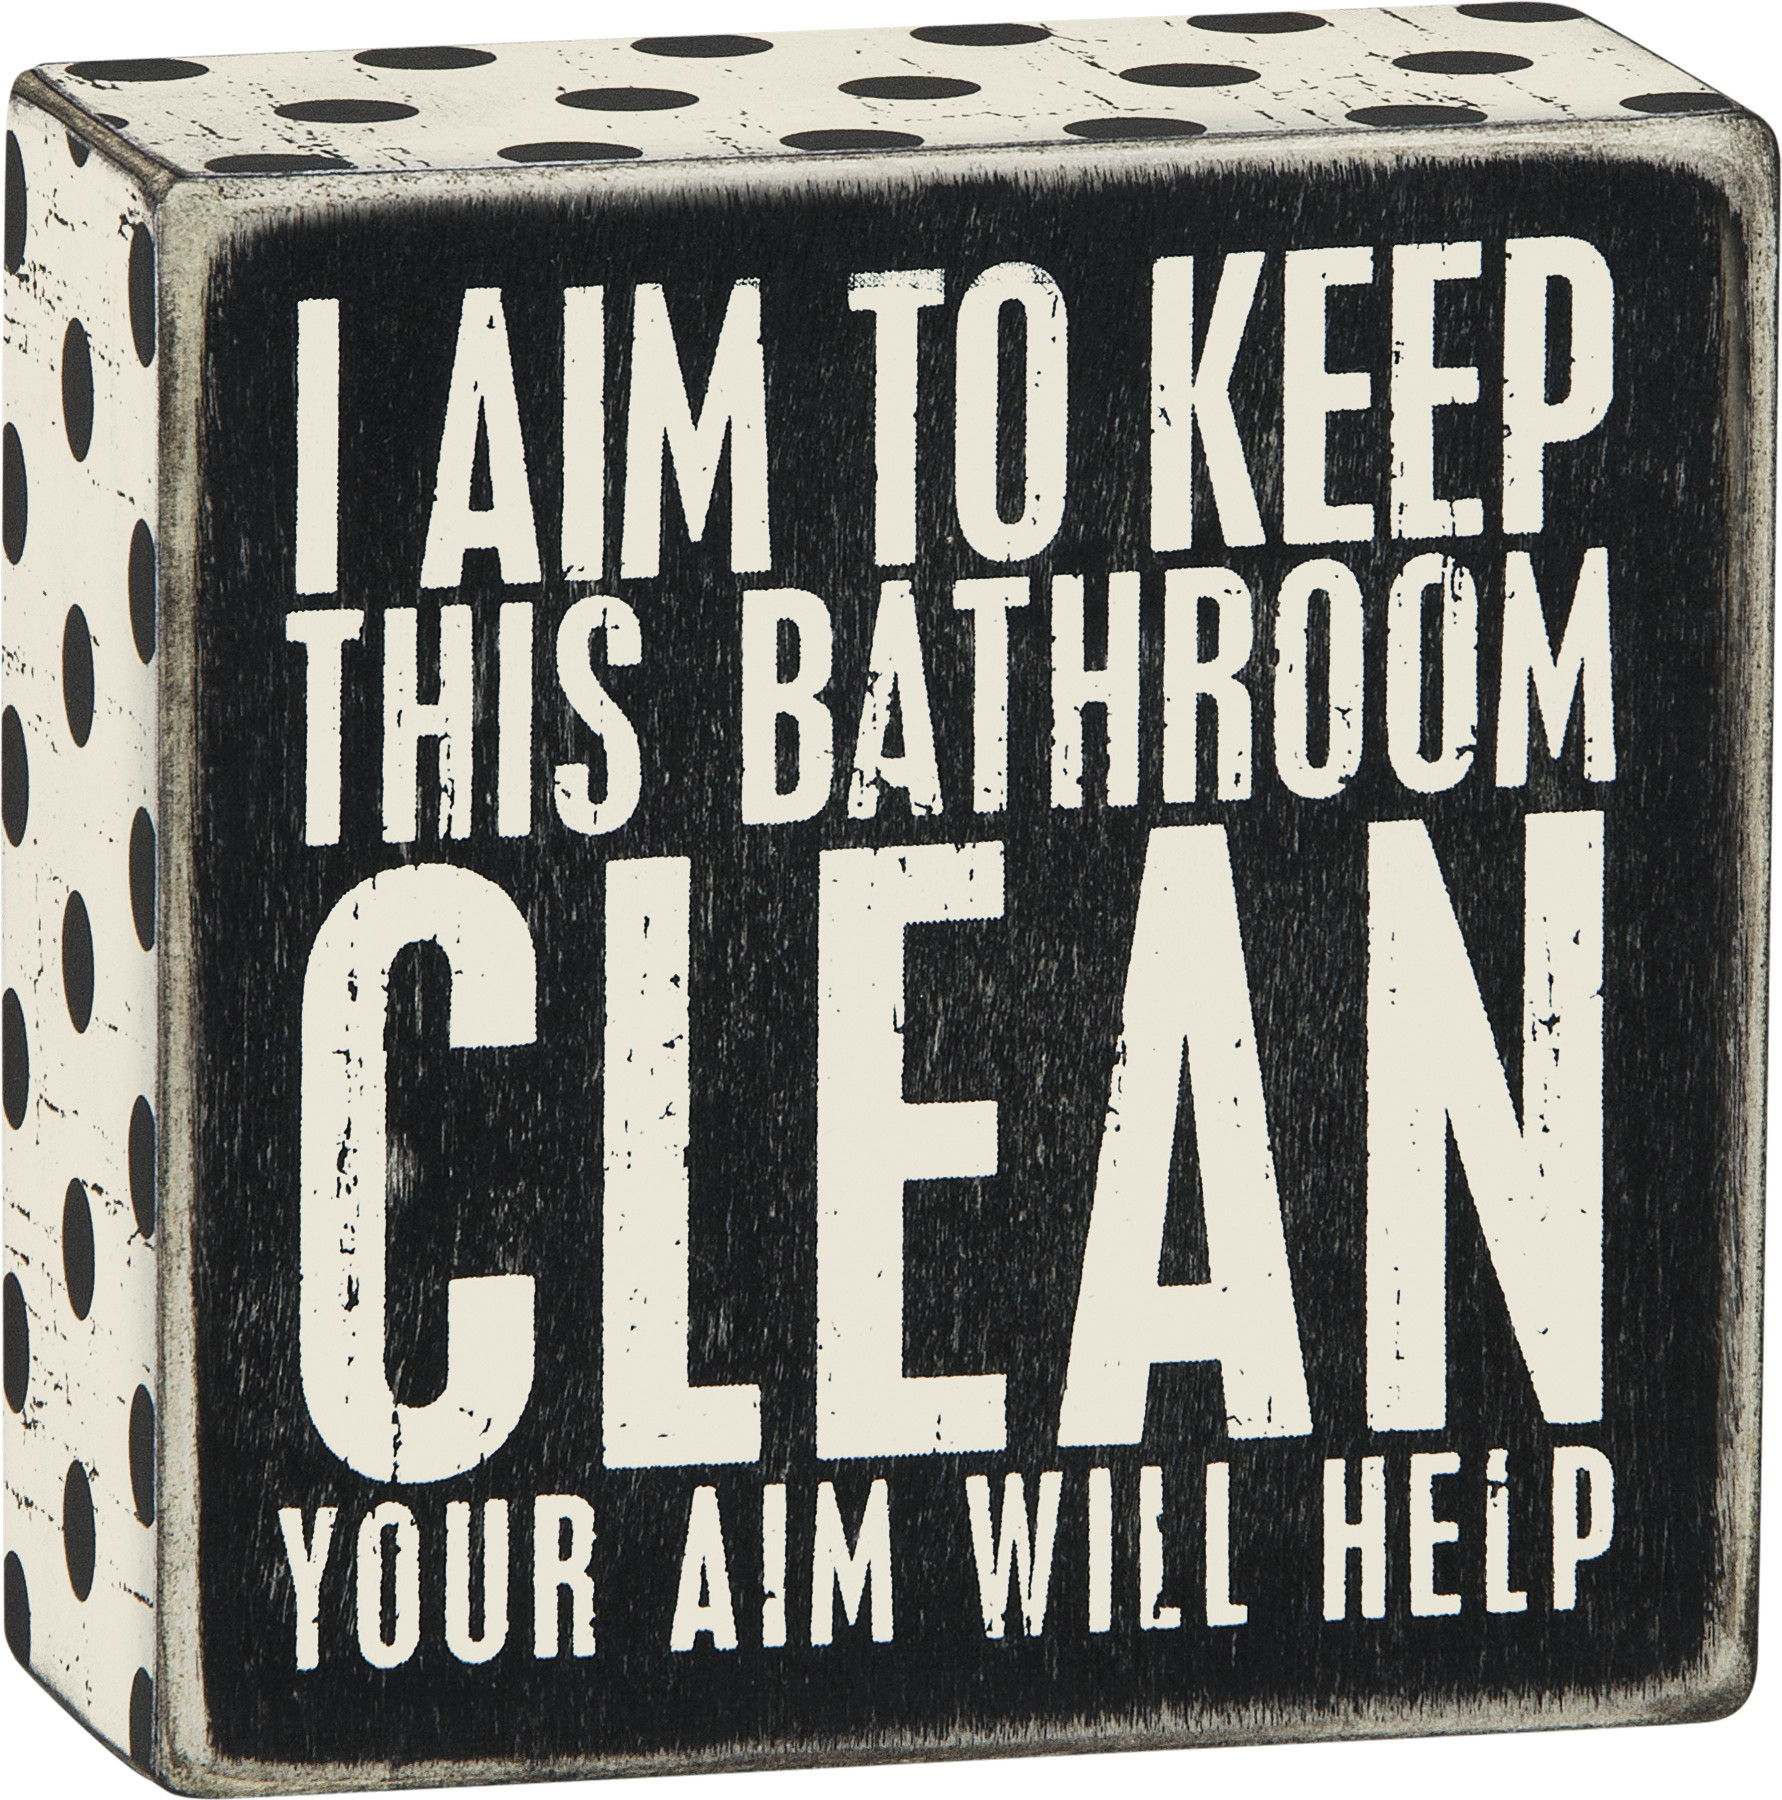 I Aim To Keep The Bathroom Clean Your Aim Will Help Decorative Wooden Box Sign 4x4 From Primitives By Kathy